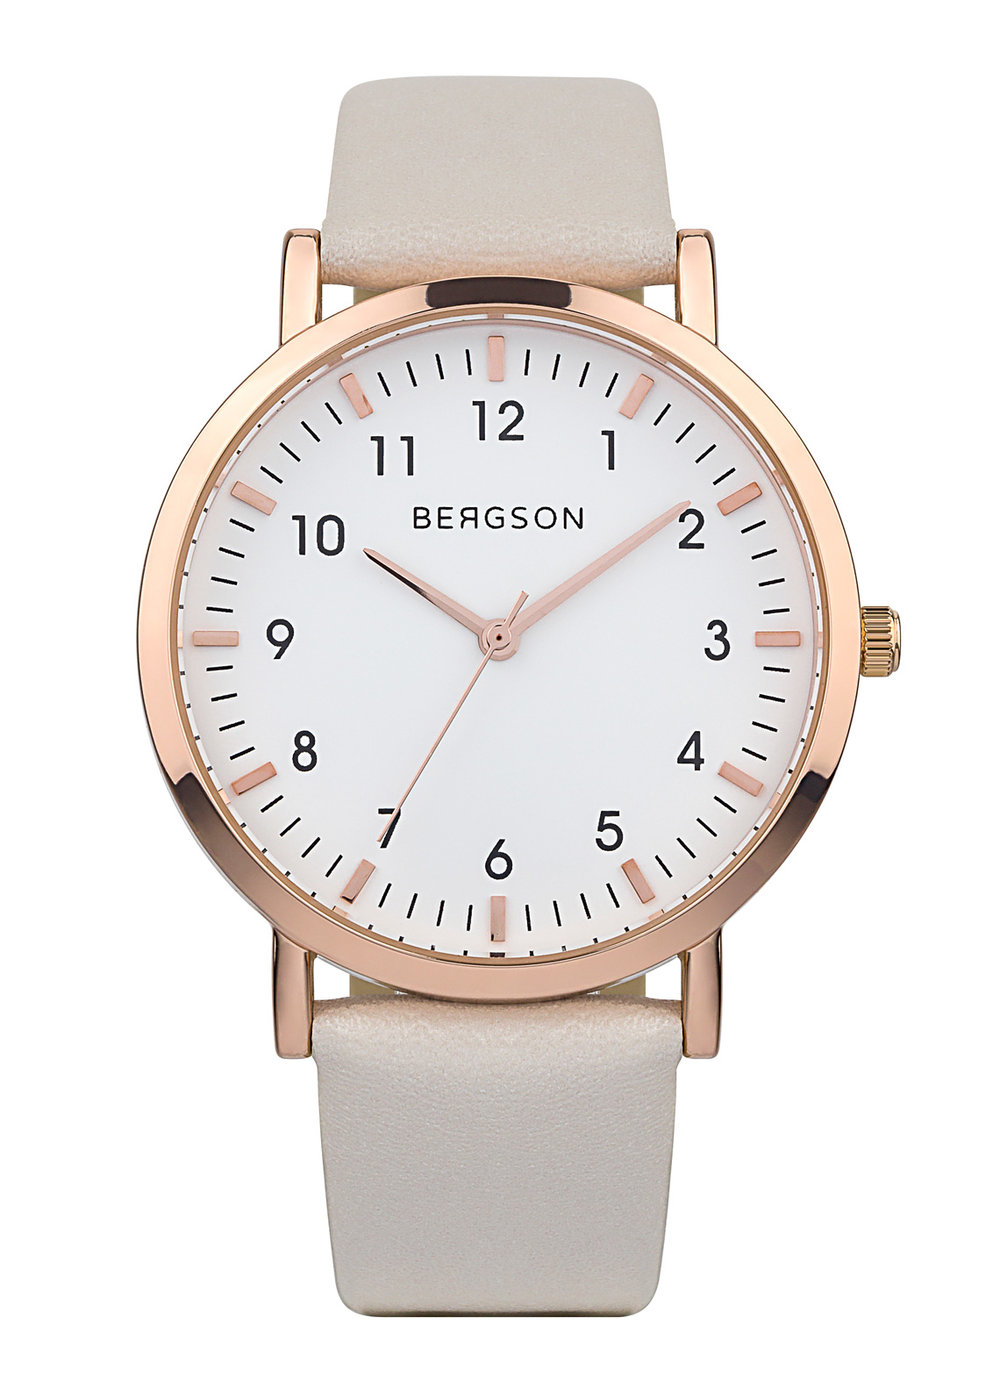 bergson_watches_BGW8165U9.jpg